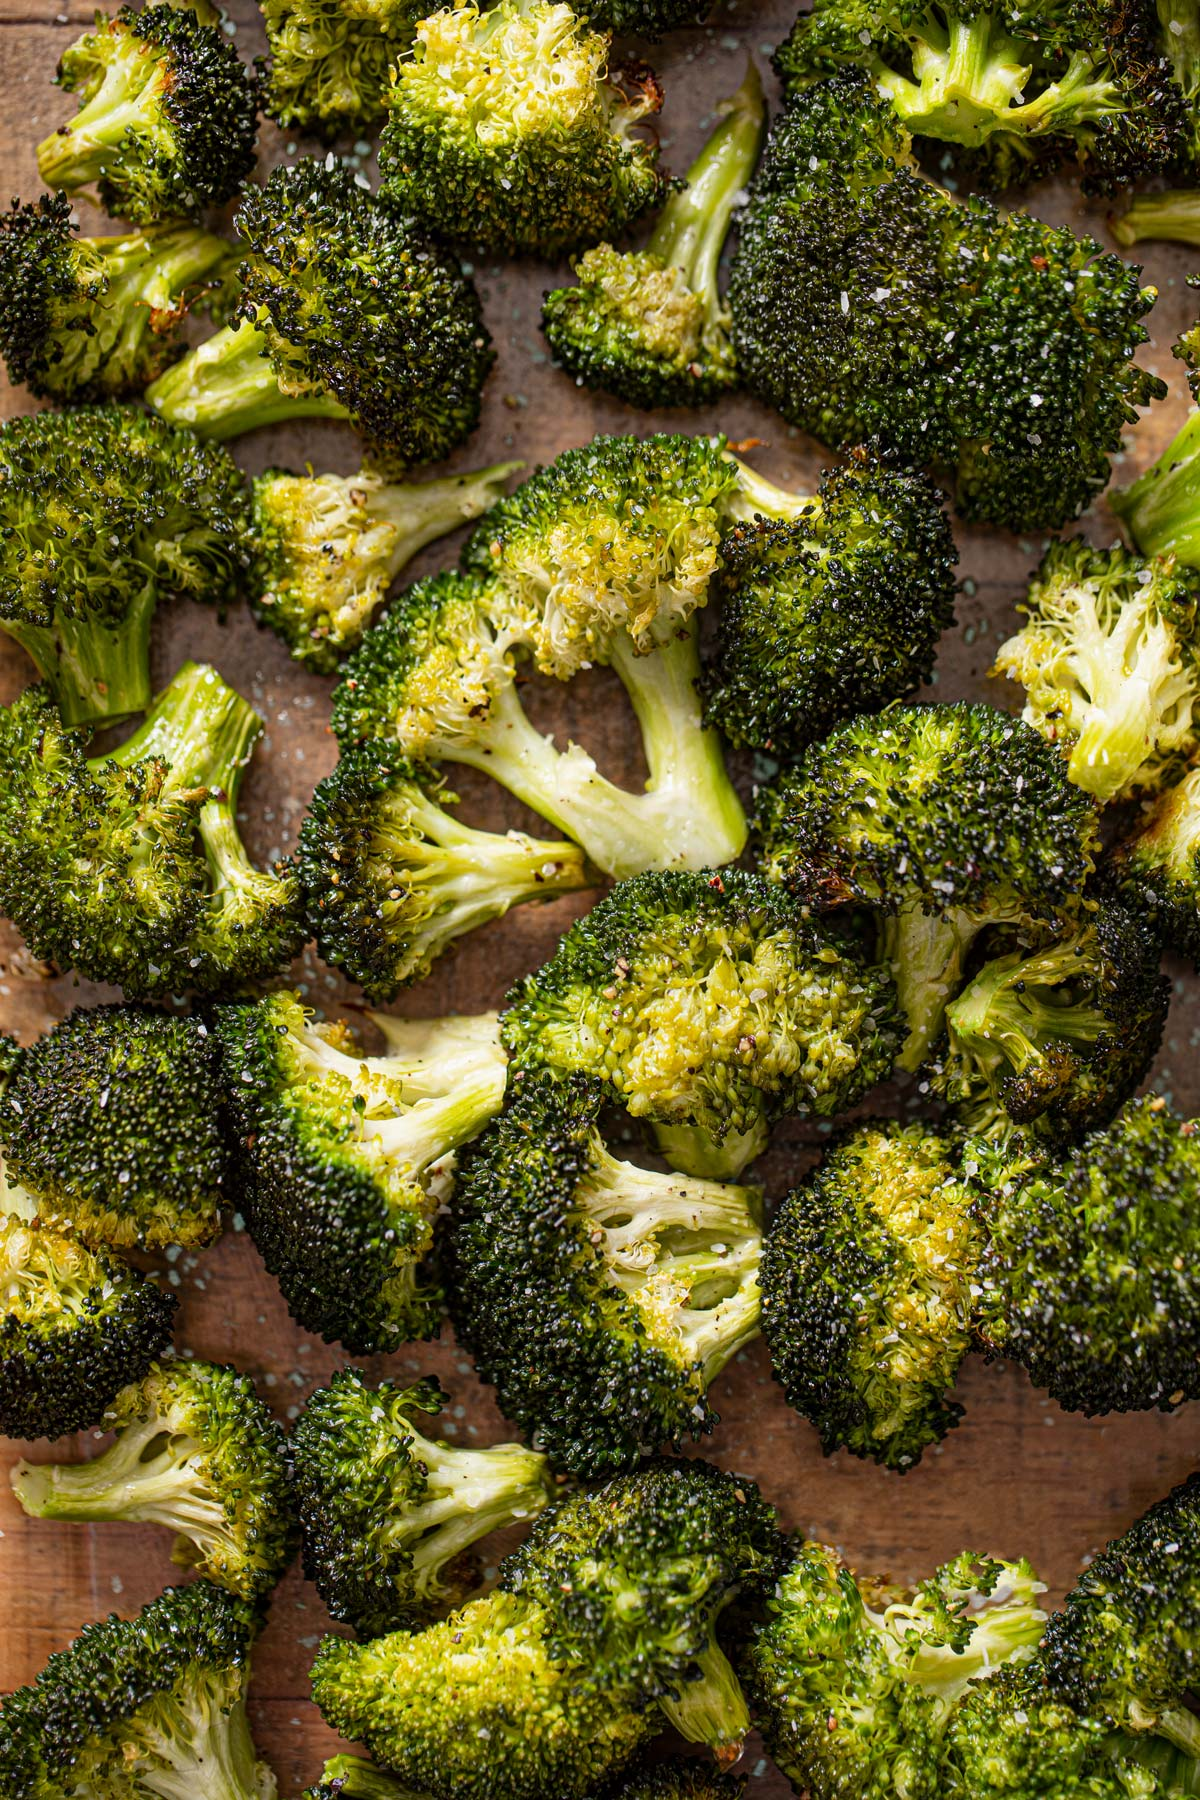 Up Close Roasted Broccoli